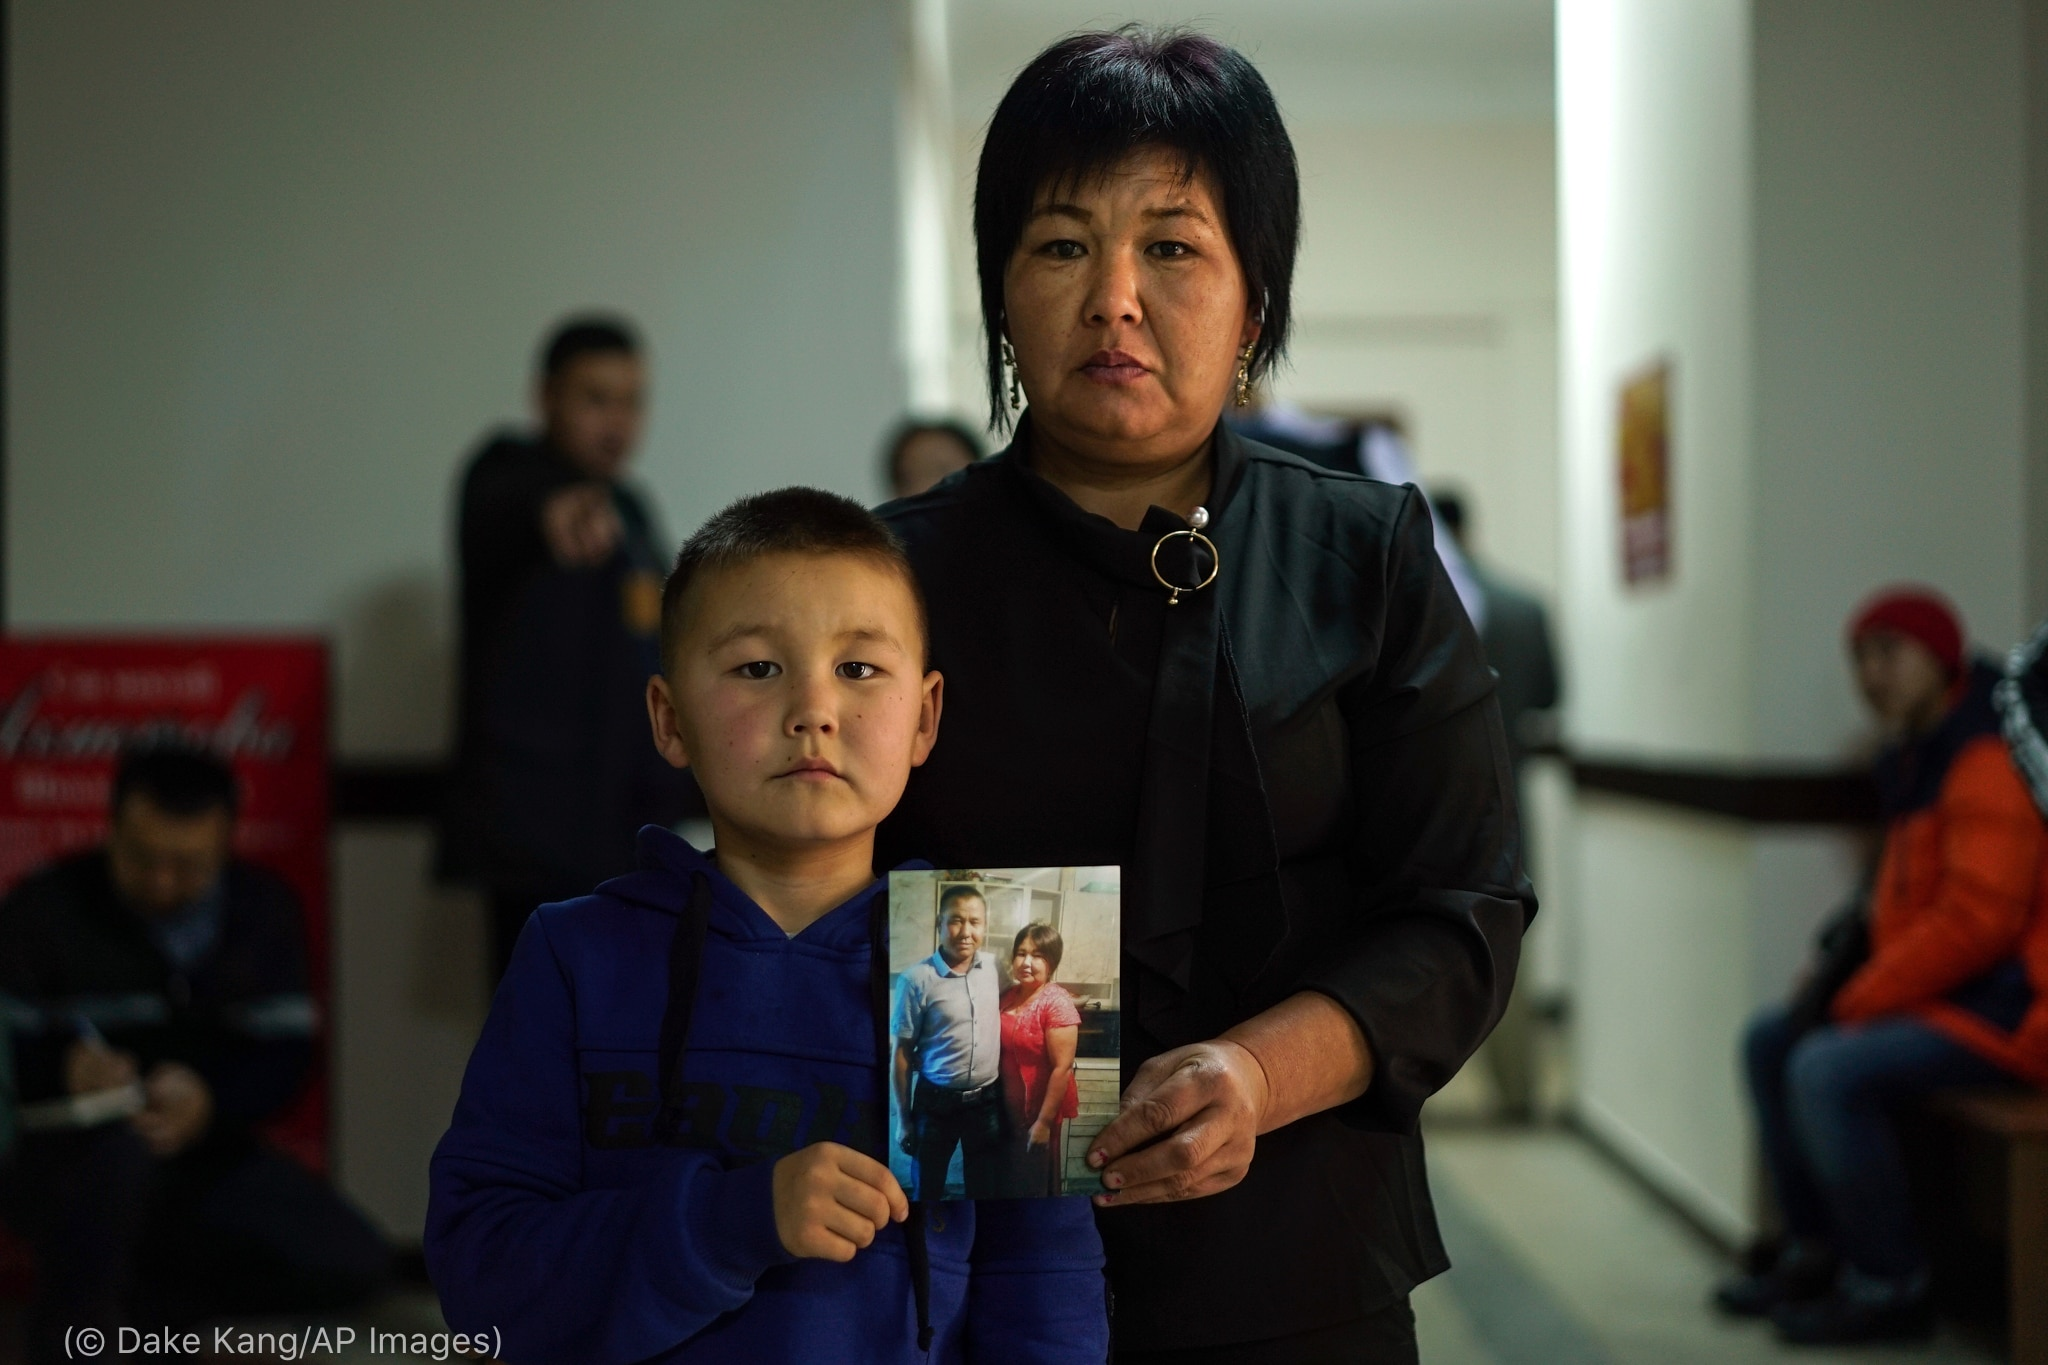 Child and woman standing facing the camera and holding a photo of two people (© Dake Kang/AP Images)